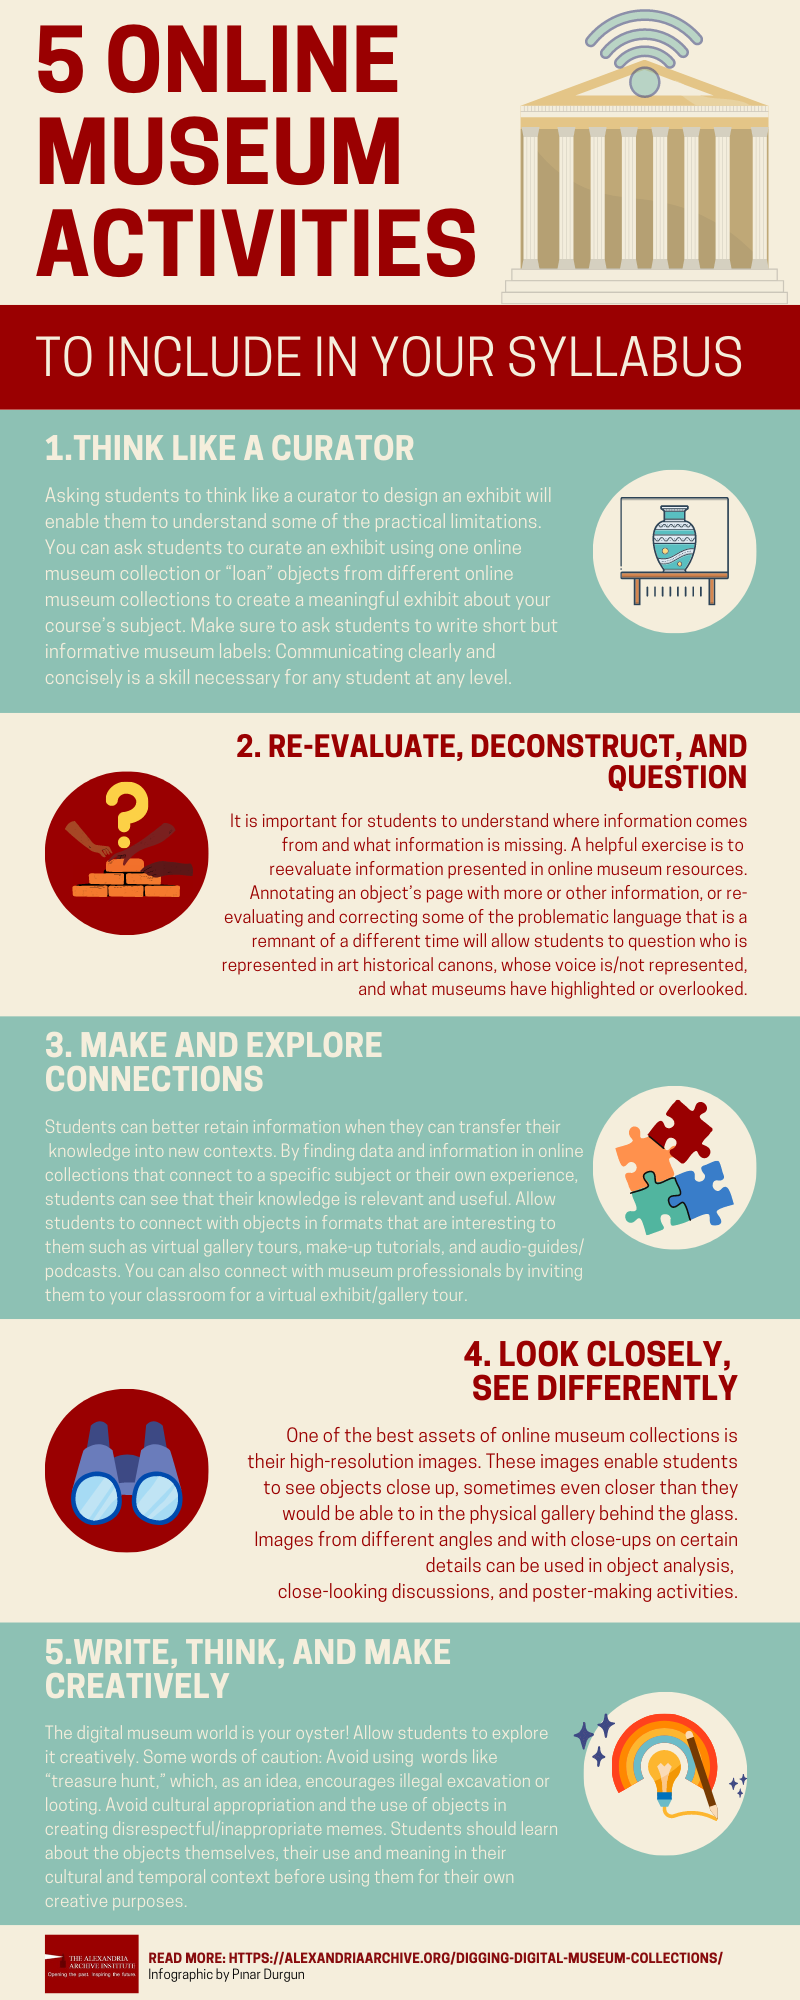 The infographic summarizes the five activities discussed in the Resource with small images that relate to the activity: a vessel in a display case (for think like a curator), a wall construction and question mark (for re-evaluate, deconstruct, and question), puzzle pieces (for make and explore connections), a magnifying glass (for looking closely), and a rainbow with a light bulb and pen (for creativity).